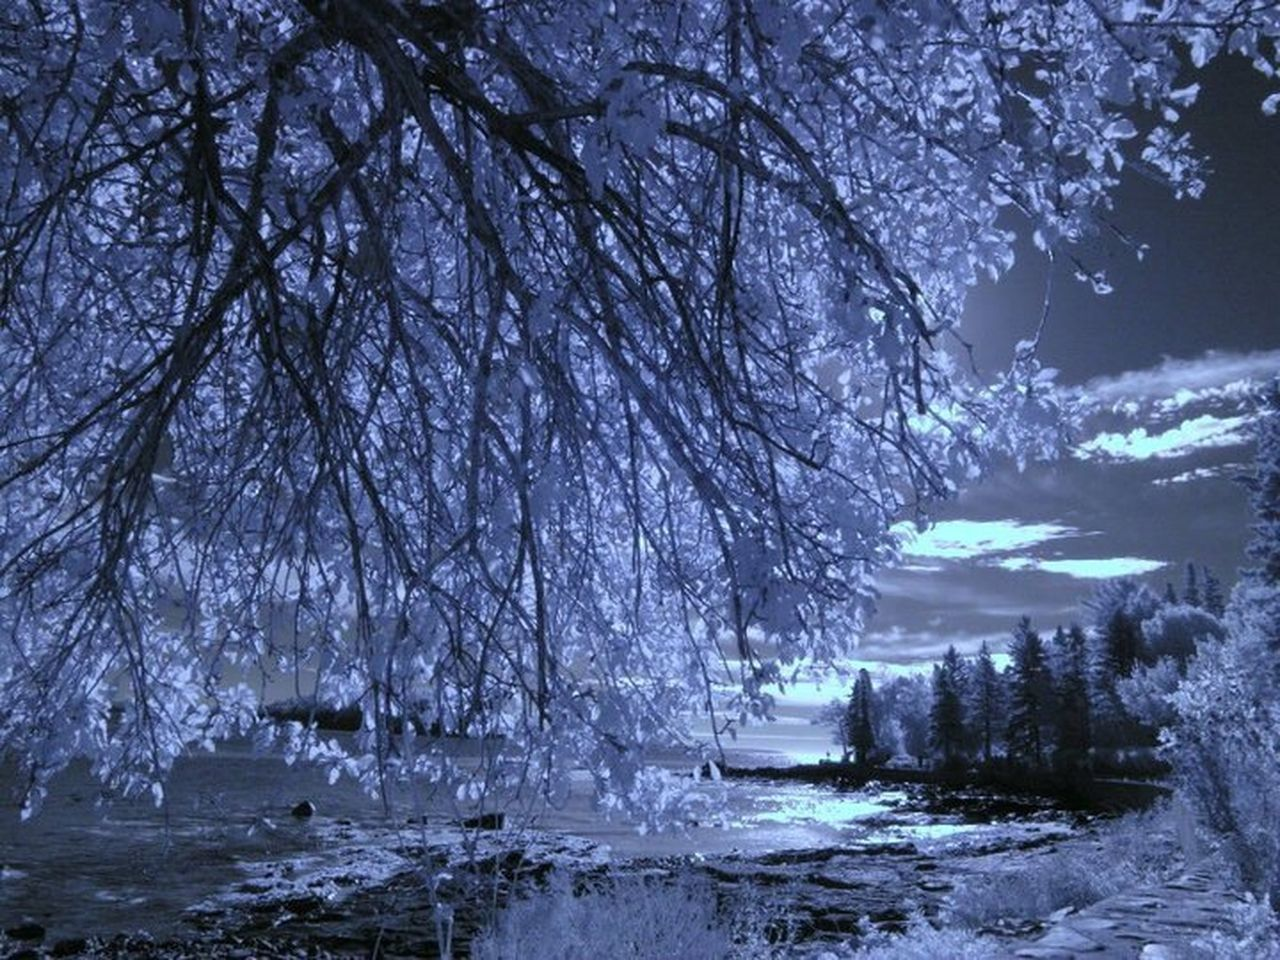 tree, winter, snow, nature, cold temperature, beauty in nature, tranquility, tranquil scene, scenics, no people, outdoors, ice, branch, frozen, sky, landscape, water, day